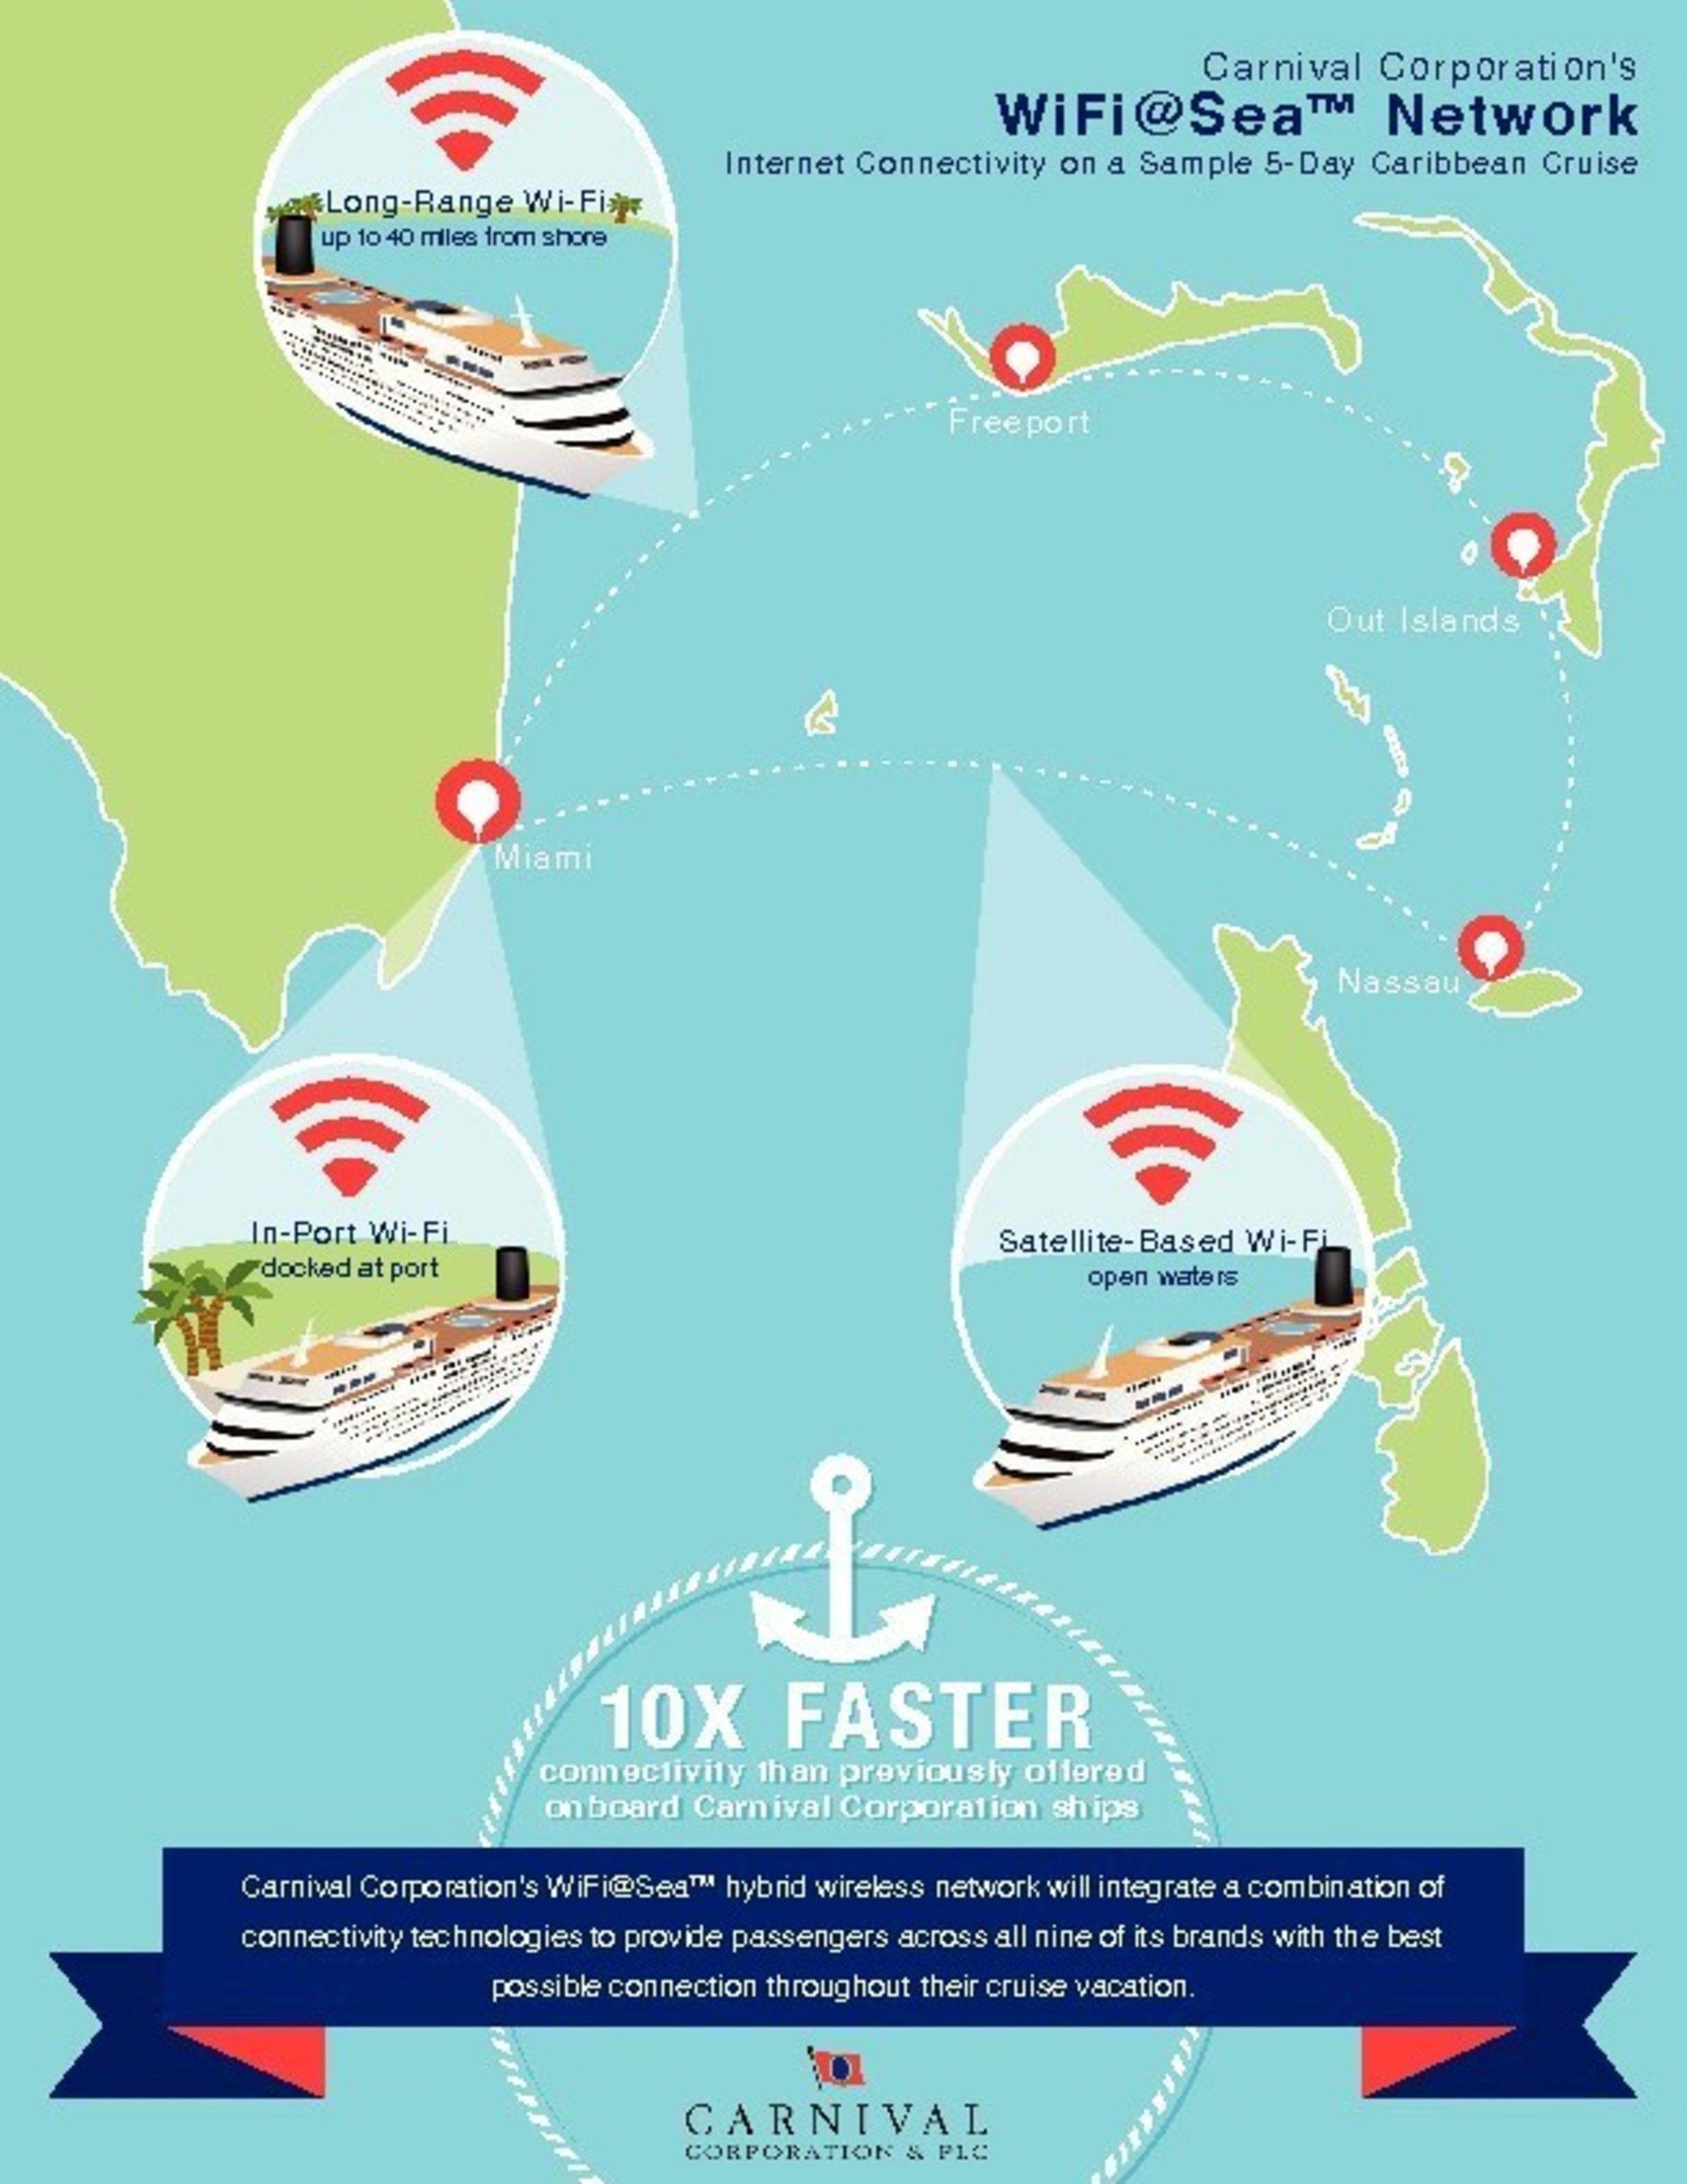 Carnival Corporation's new WiFi@Sea provides 10x faster speeds than previously available.